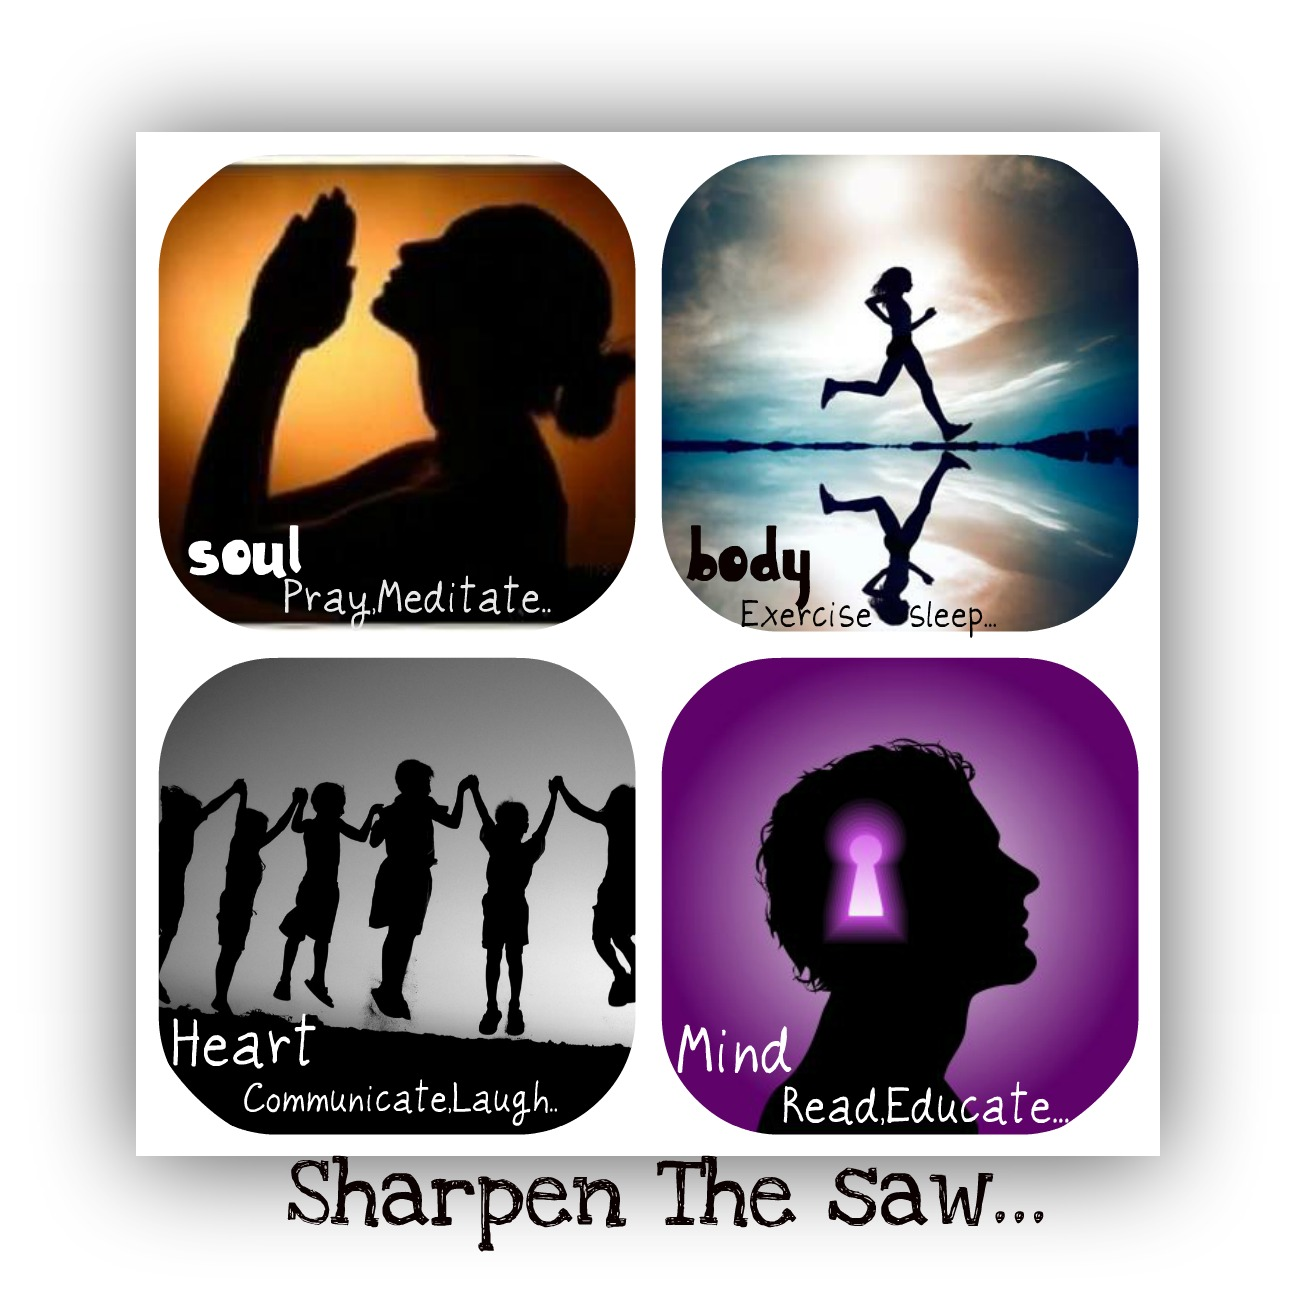 Sharpen The Saw Habit 7 Sharpen The Saw On Pinterest 7 Habits ...